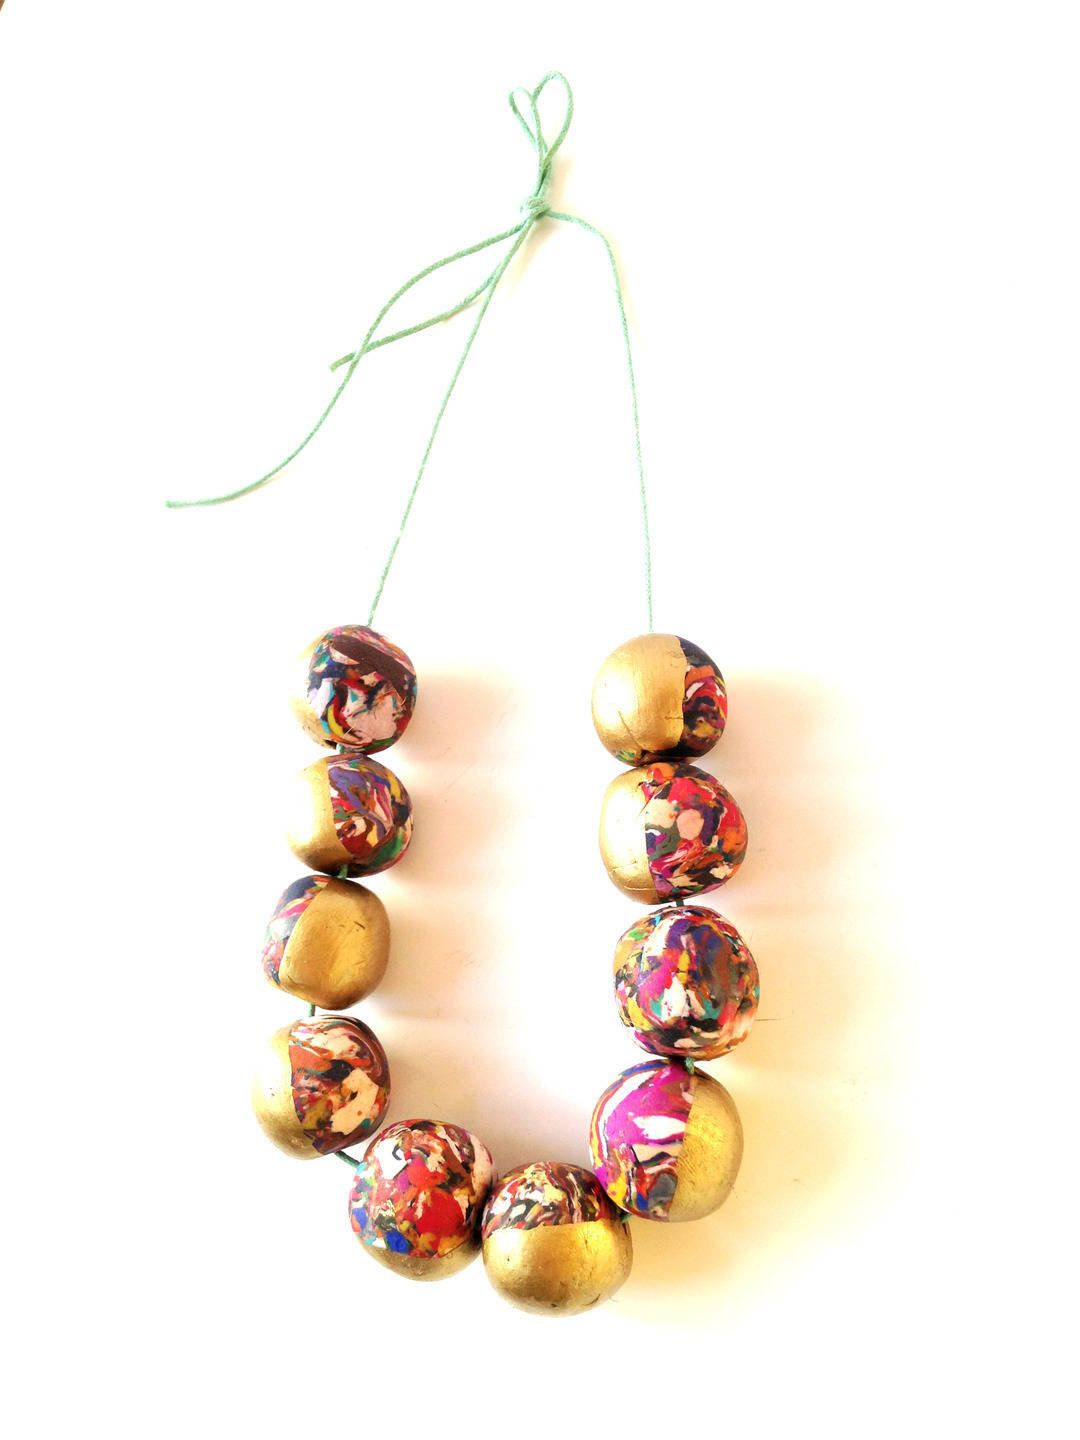 70a681ba5c367 Necklace HALF GOLD, half rainbow, large beads, mint colored tie on ...